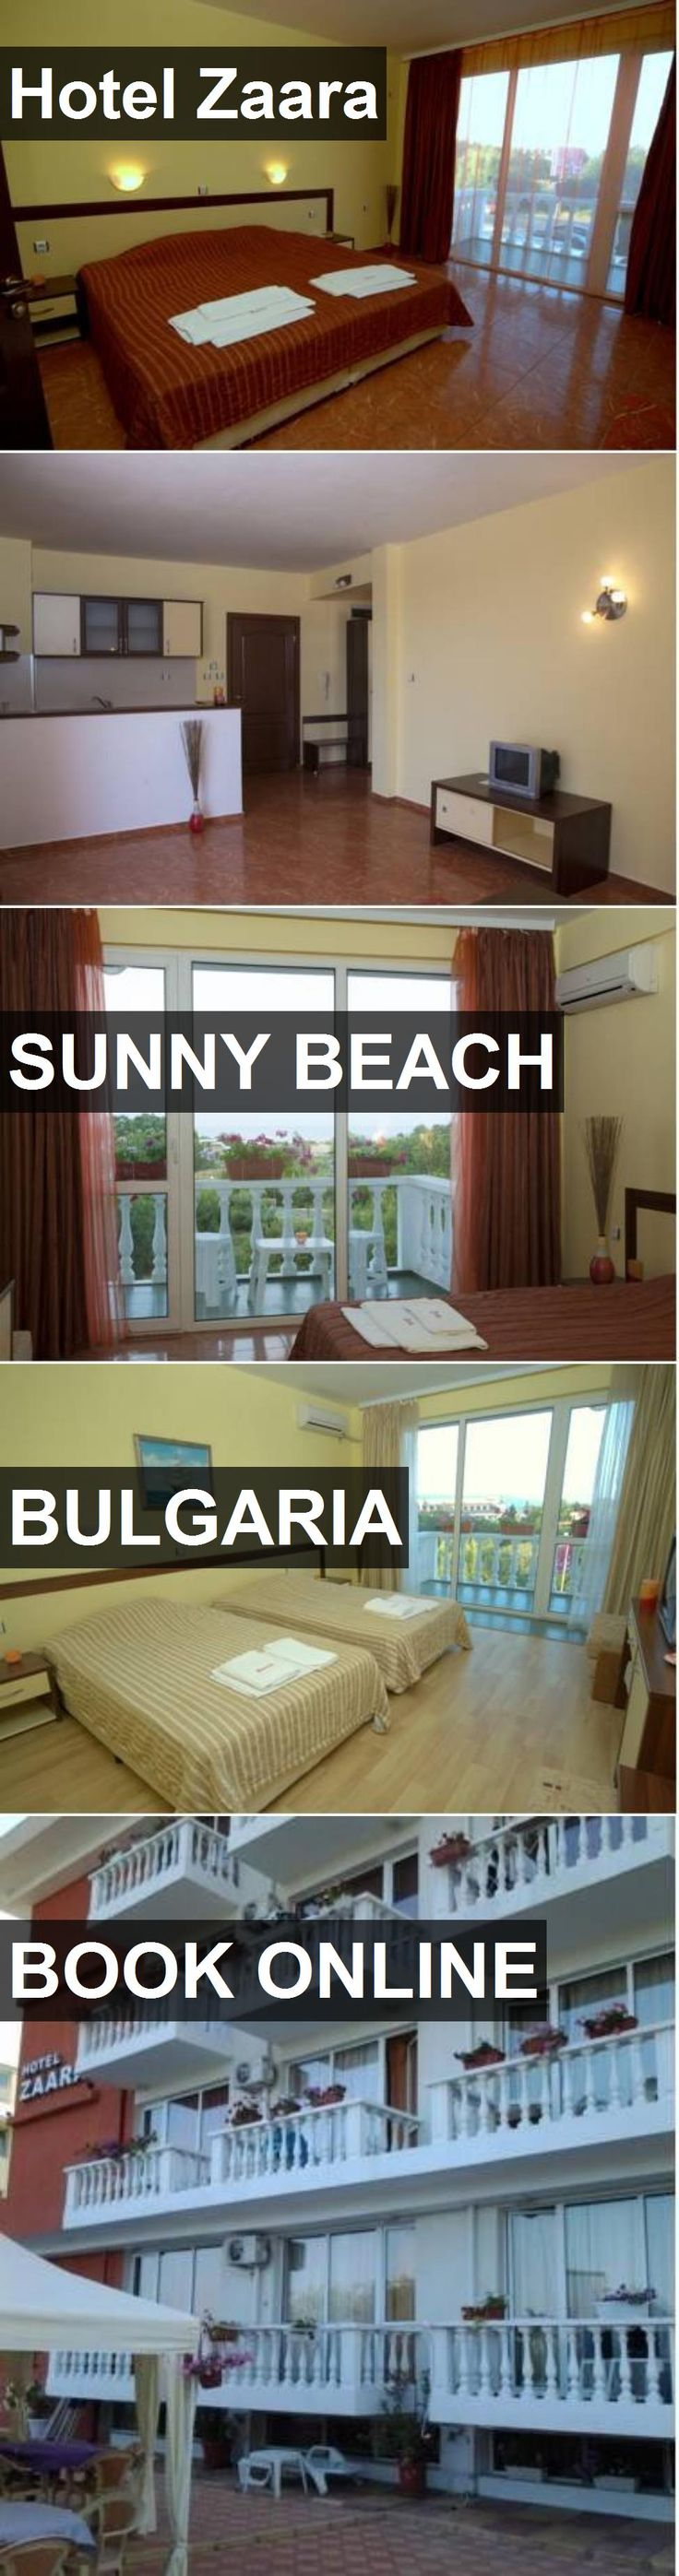 Hotel Hotel Zaara in Sunny Beach, Bulgaria. For more information, photos, reviews and best prices please follow the link. #Bulgaria #SunnyBeach #HotelZaara #hotel #travel #vacation